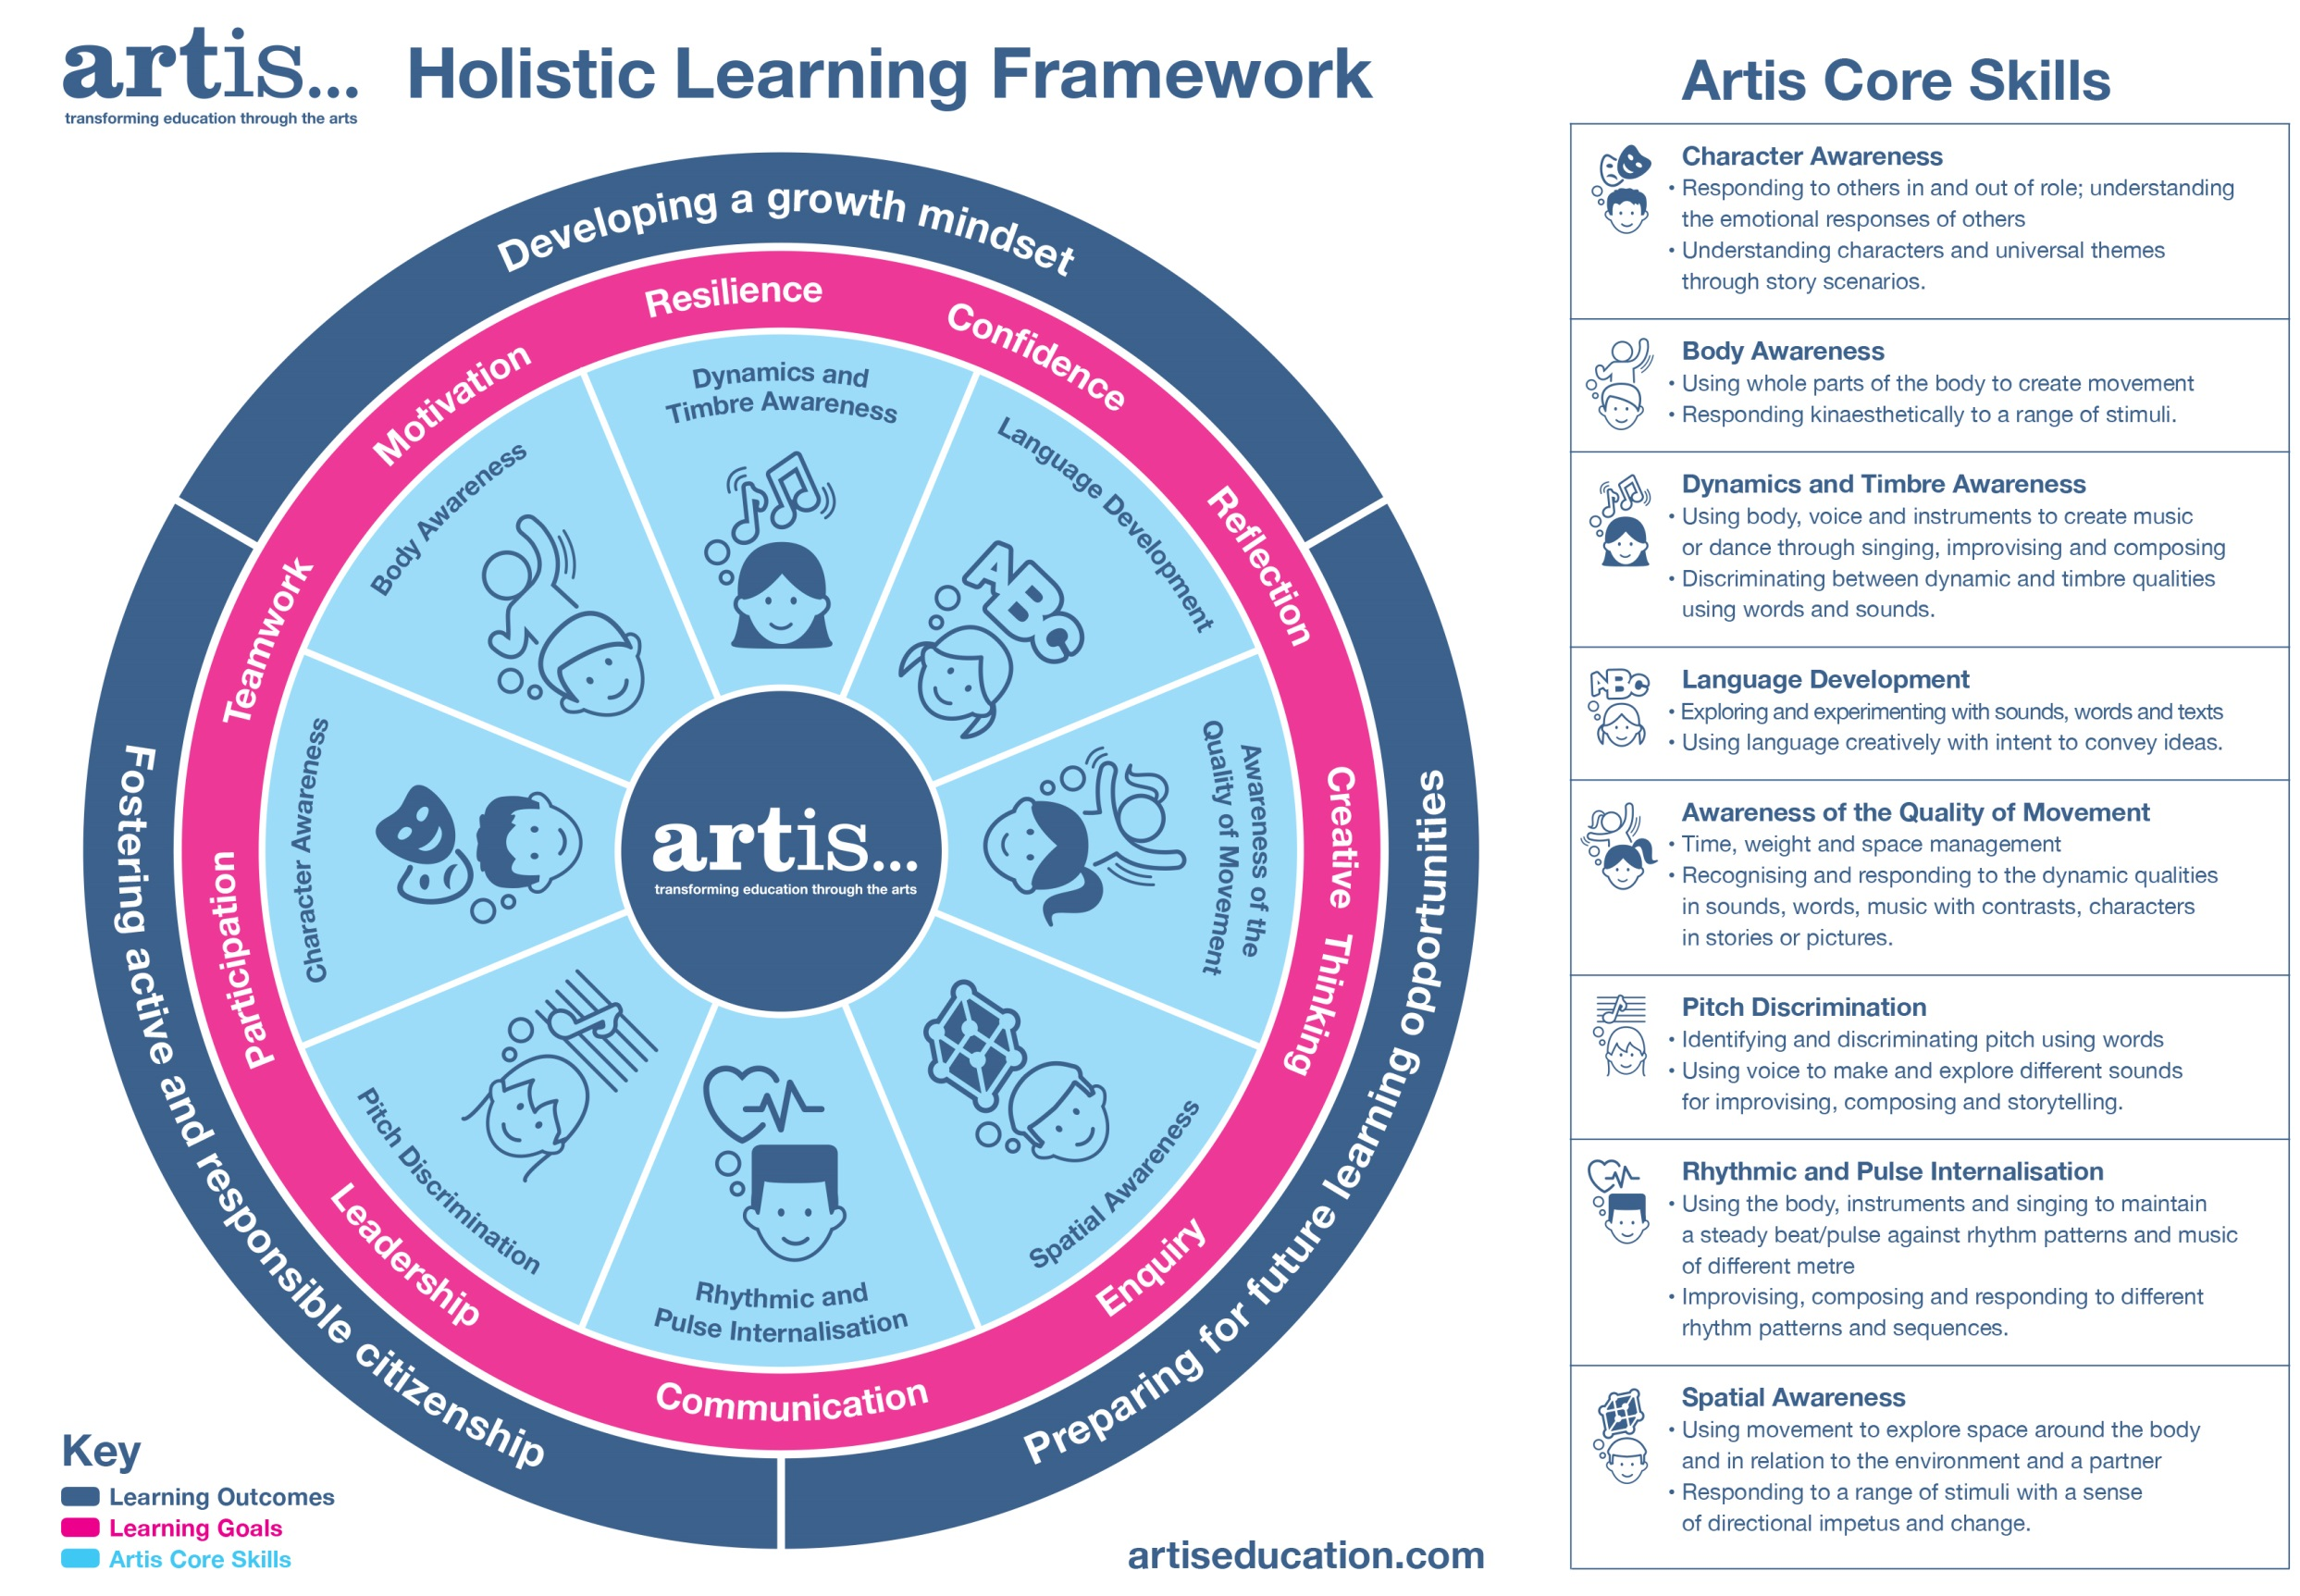 Artis Holistic Learning Framework